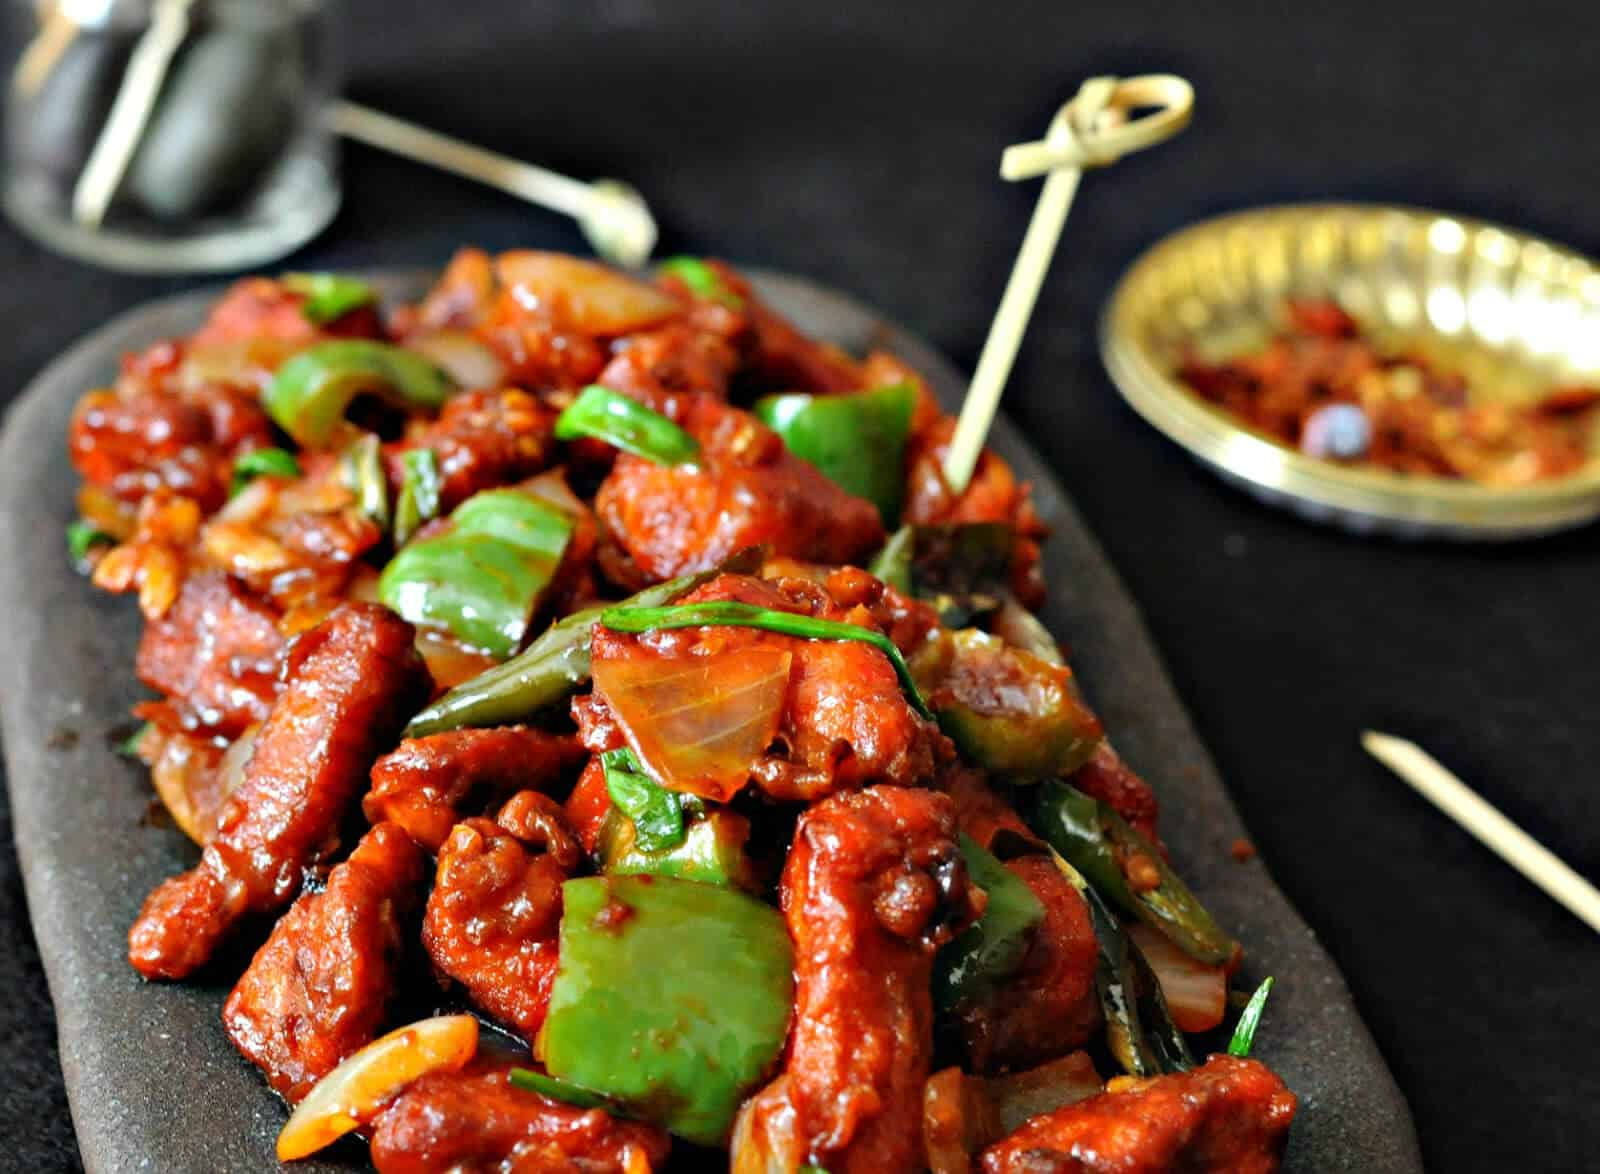 Schezwan Chilli Chicken - Crispy chicken with spicy schezwan sauce